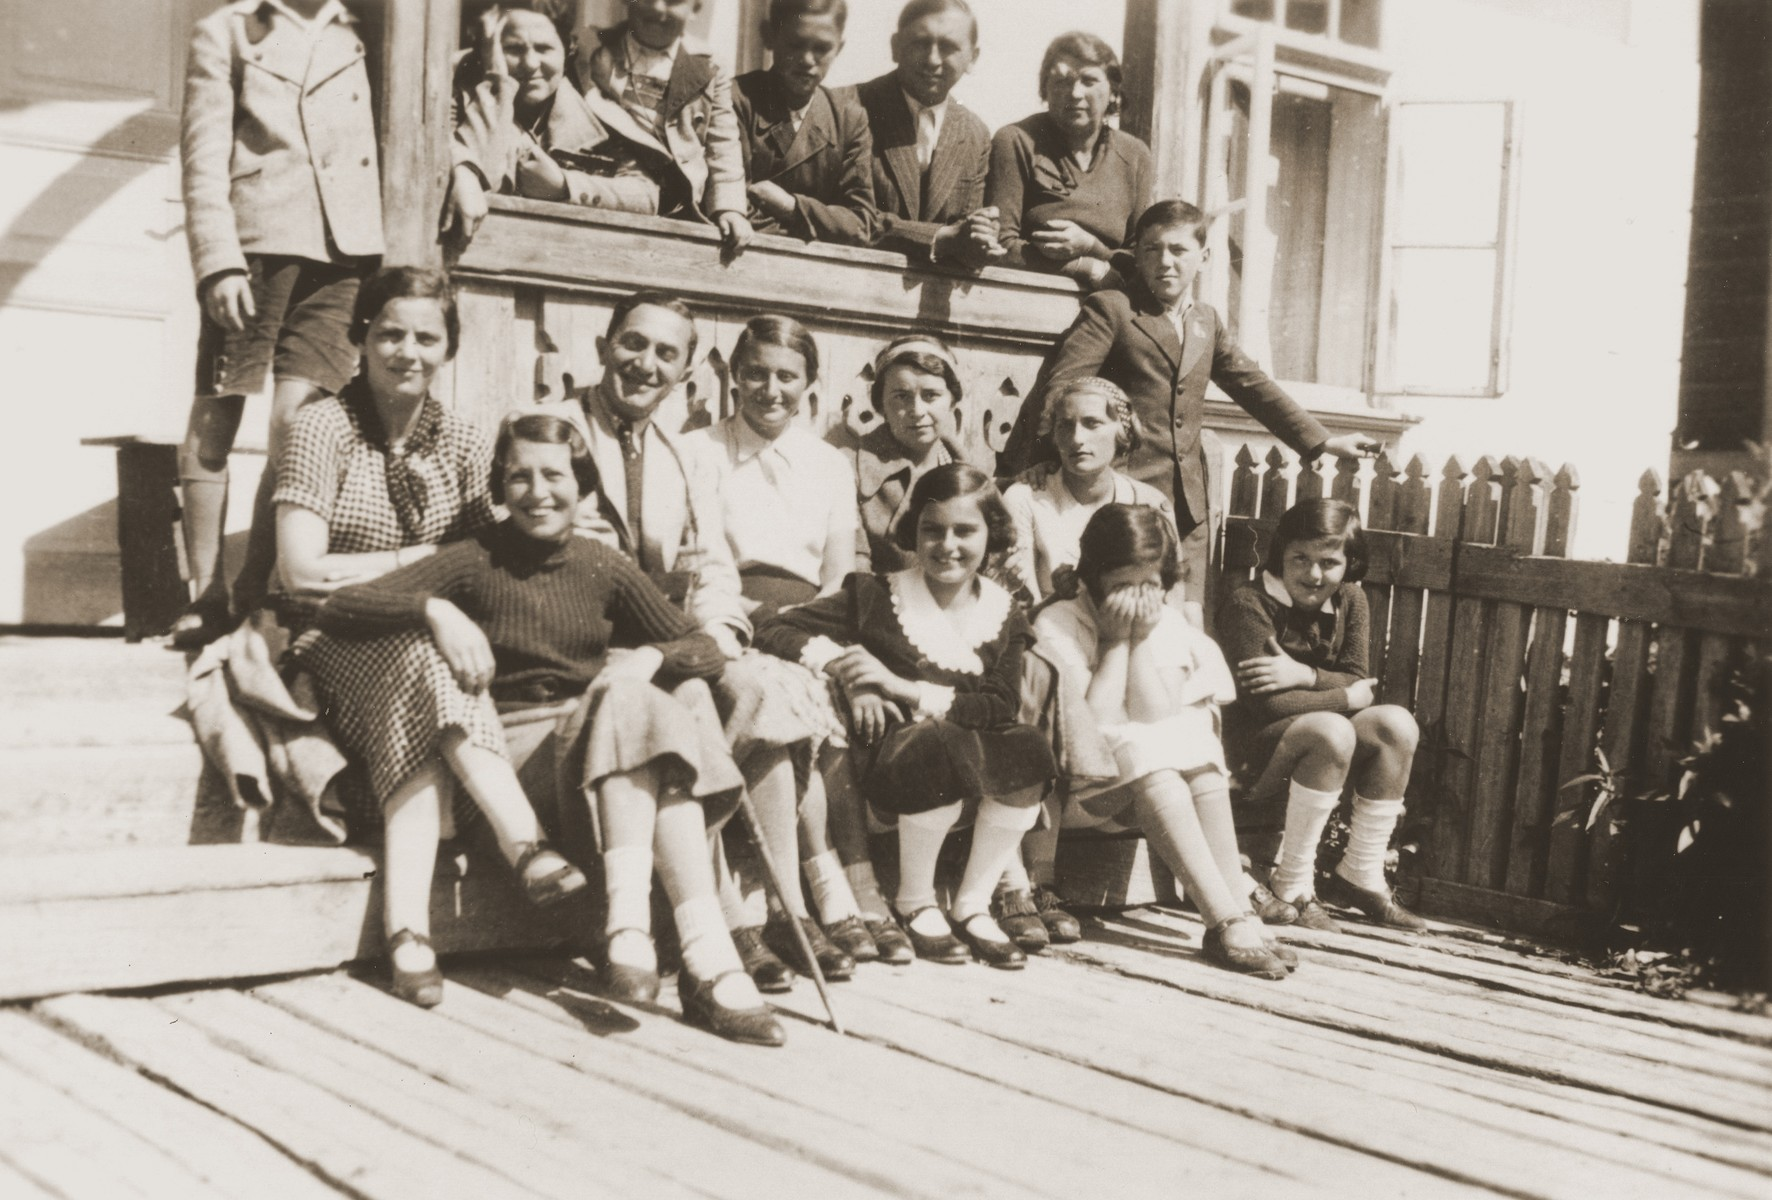 Lotte Gottfried poses with friends and relatives at a resort in Iacobeni.  Among those pictured are Blanka Morgenstern Engler (middle row, left) and Rosa Schwarzkopf (in front of Blanka).